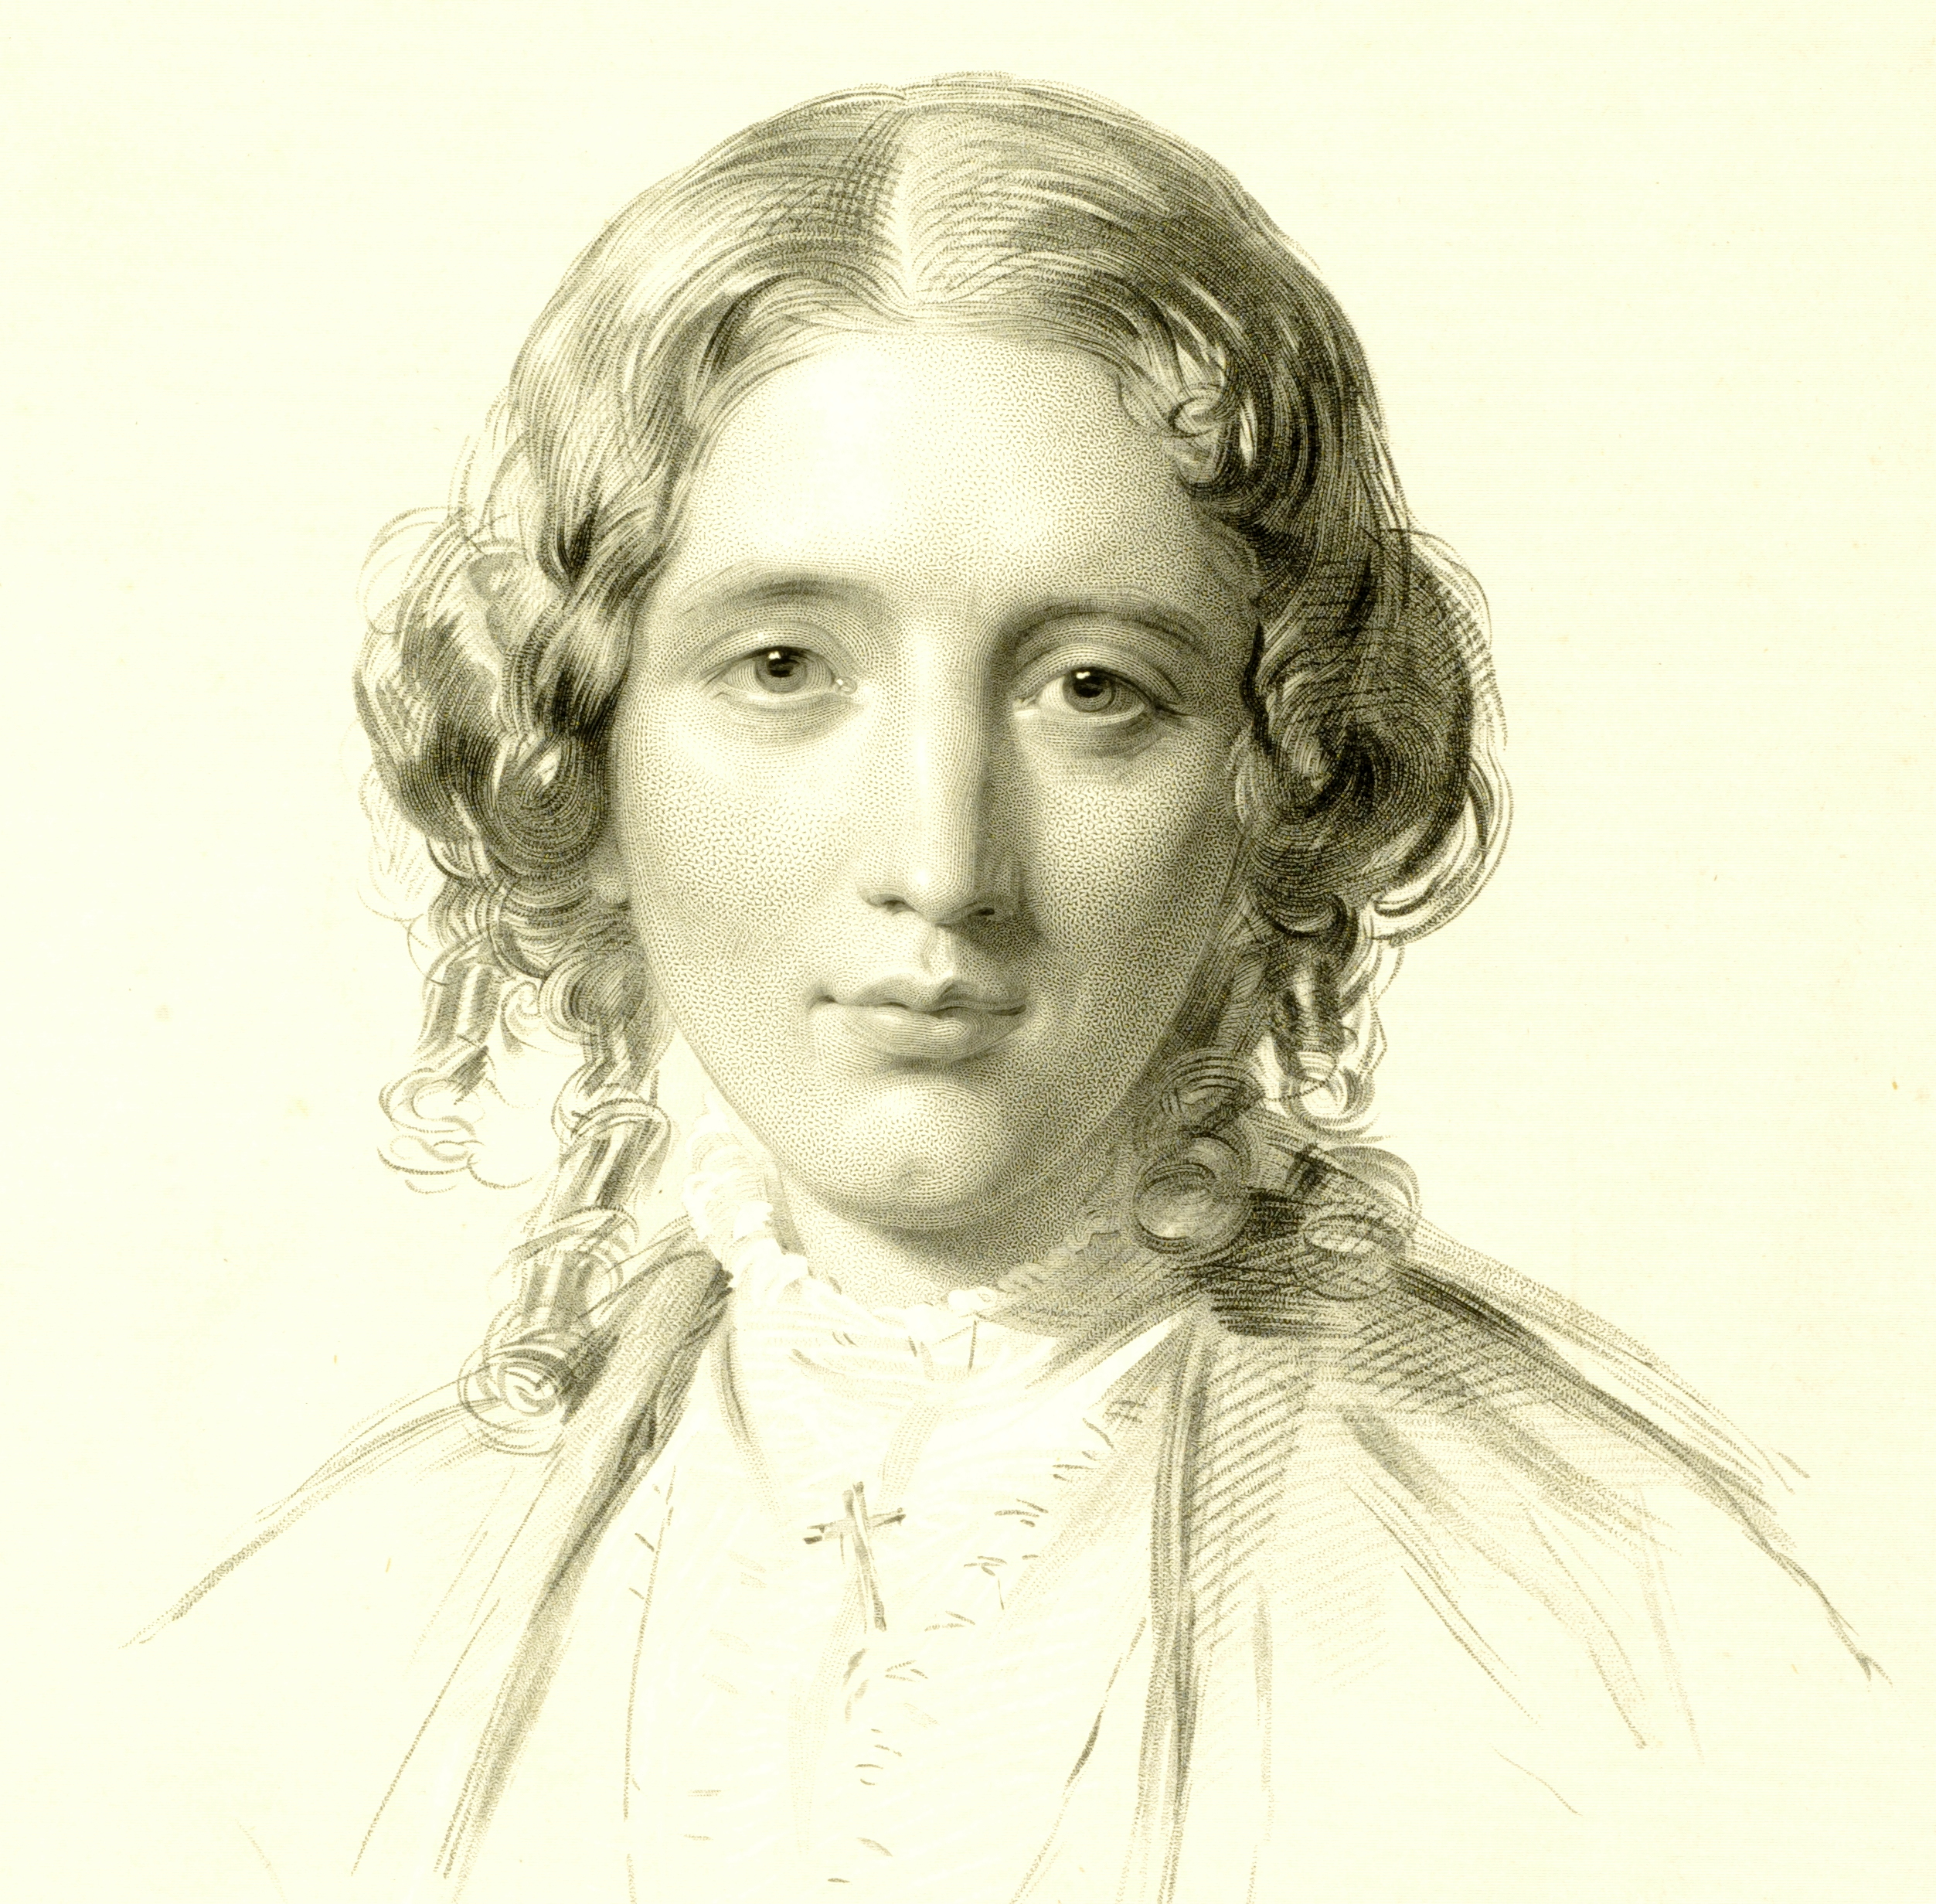 Harriet_Beecher_Stowe_by_Francis_Holl